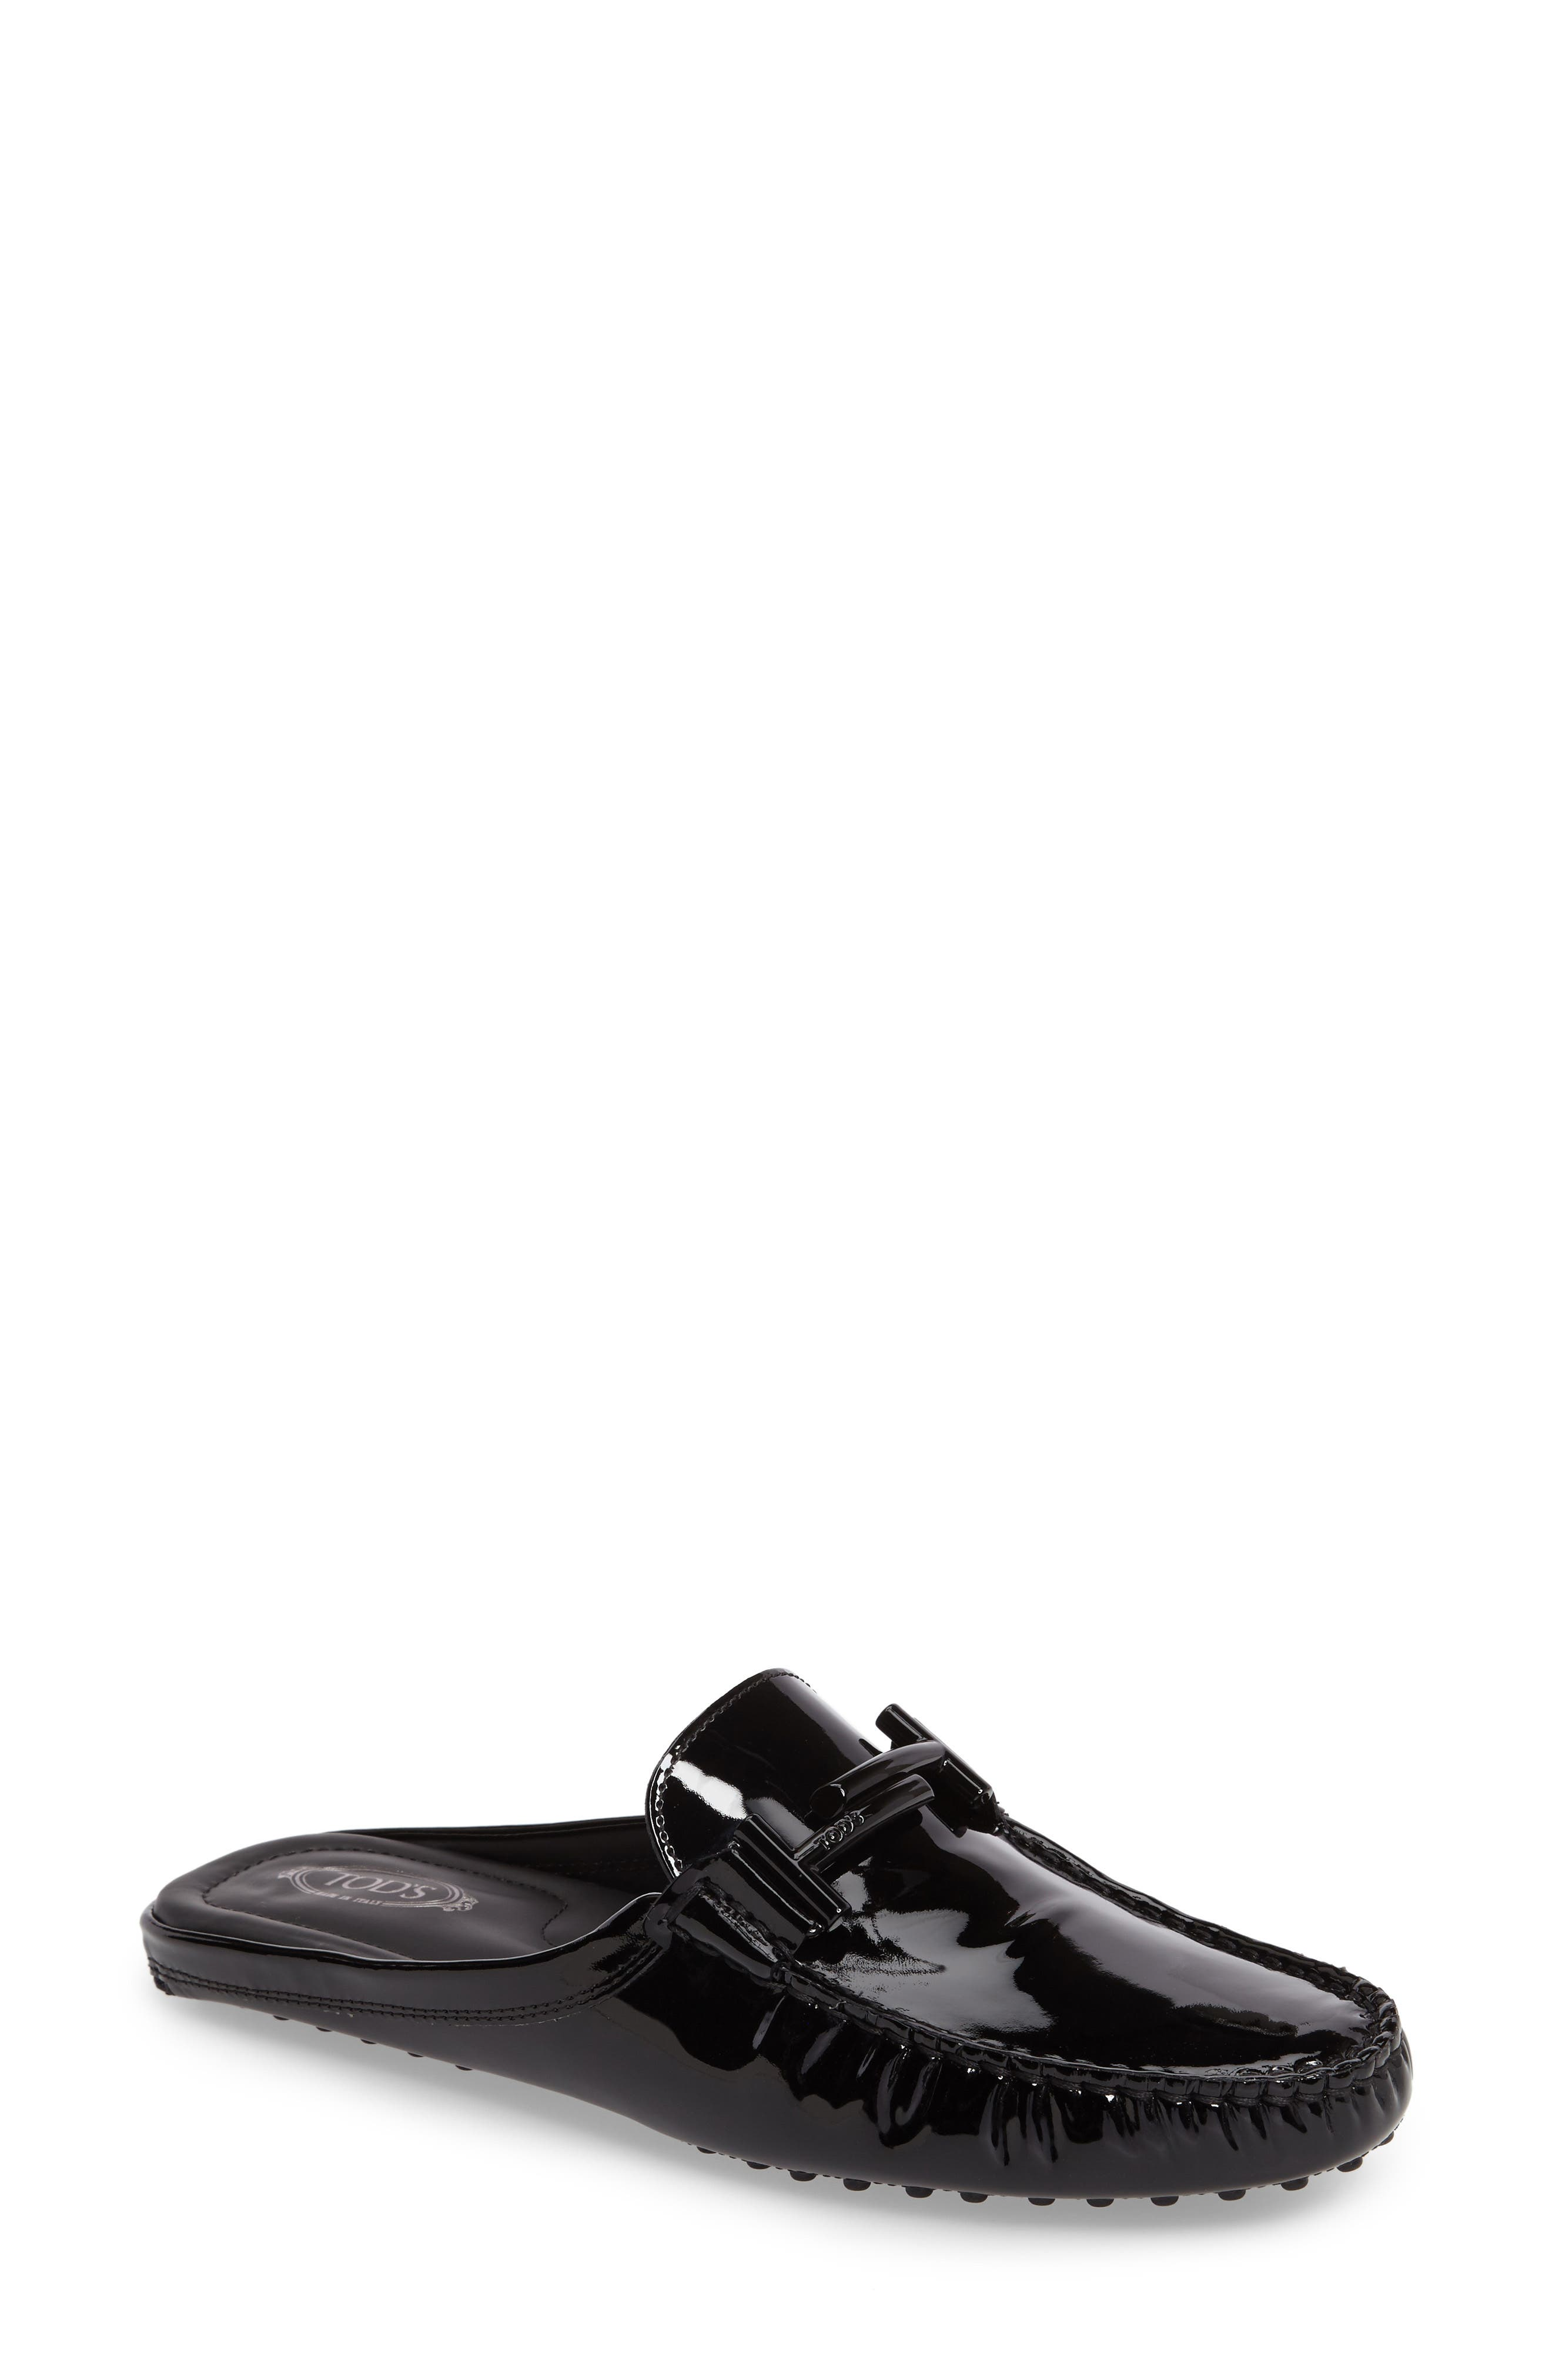 Gommino Double-T Loafer Mule,                             Main thumbnail 1, color,                             Black Patent